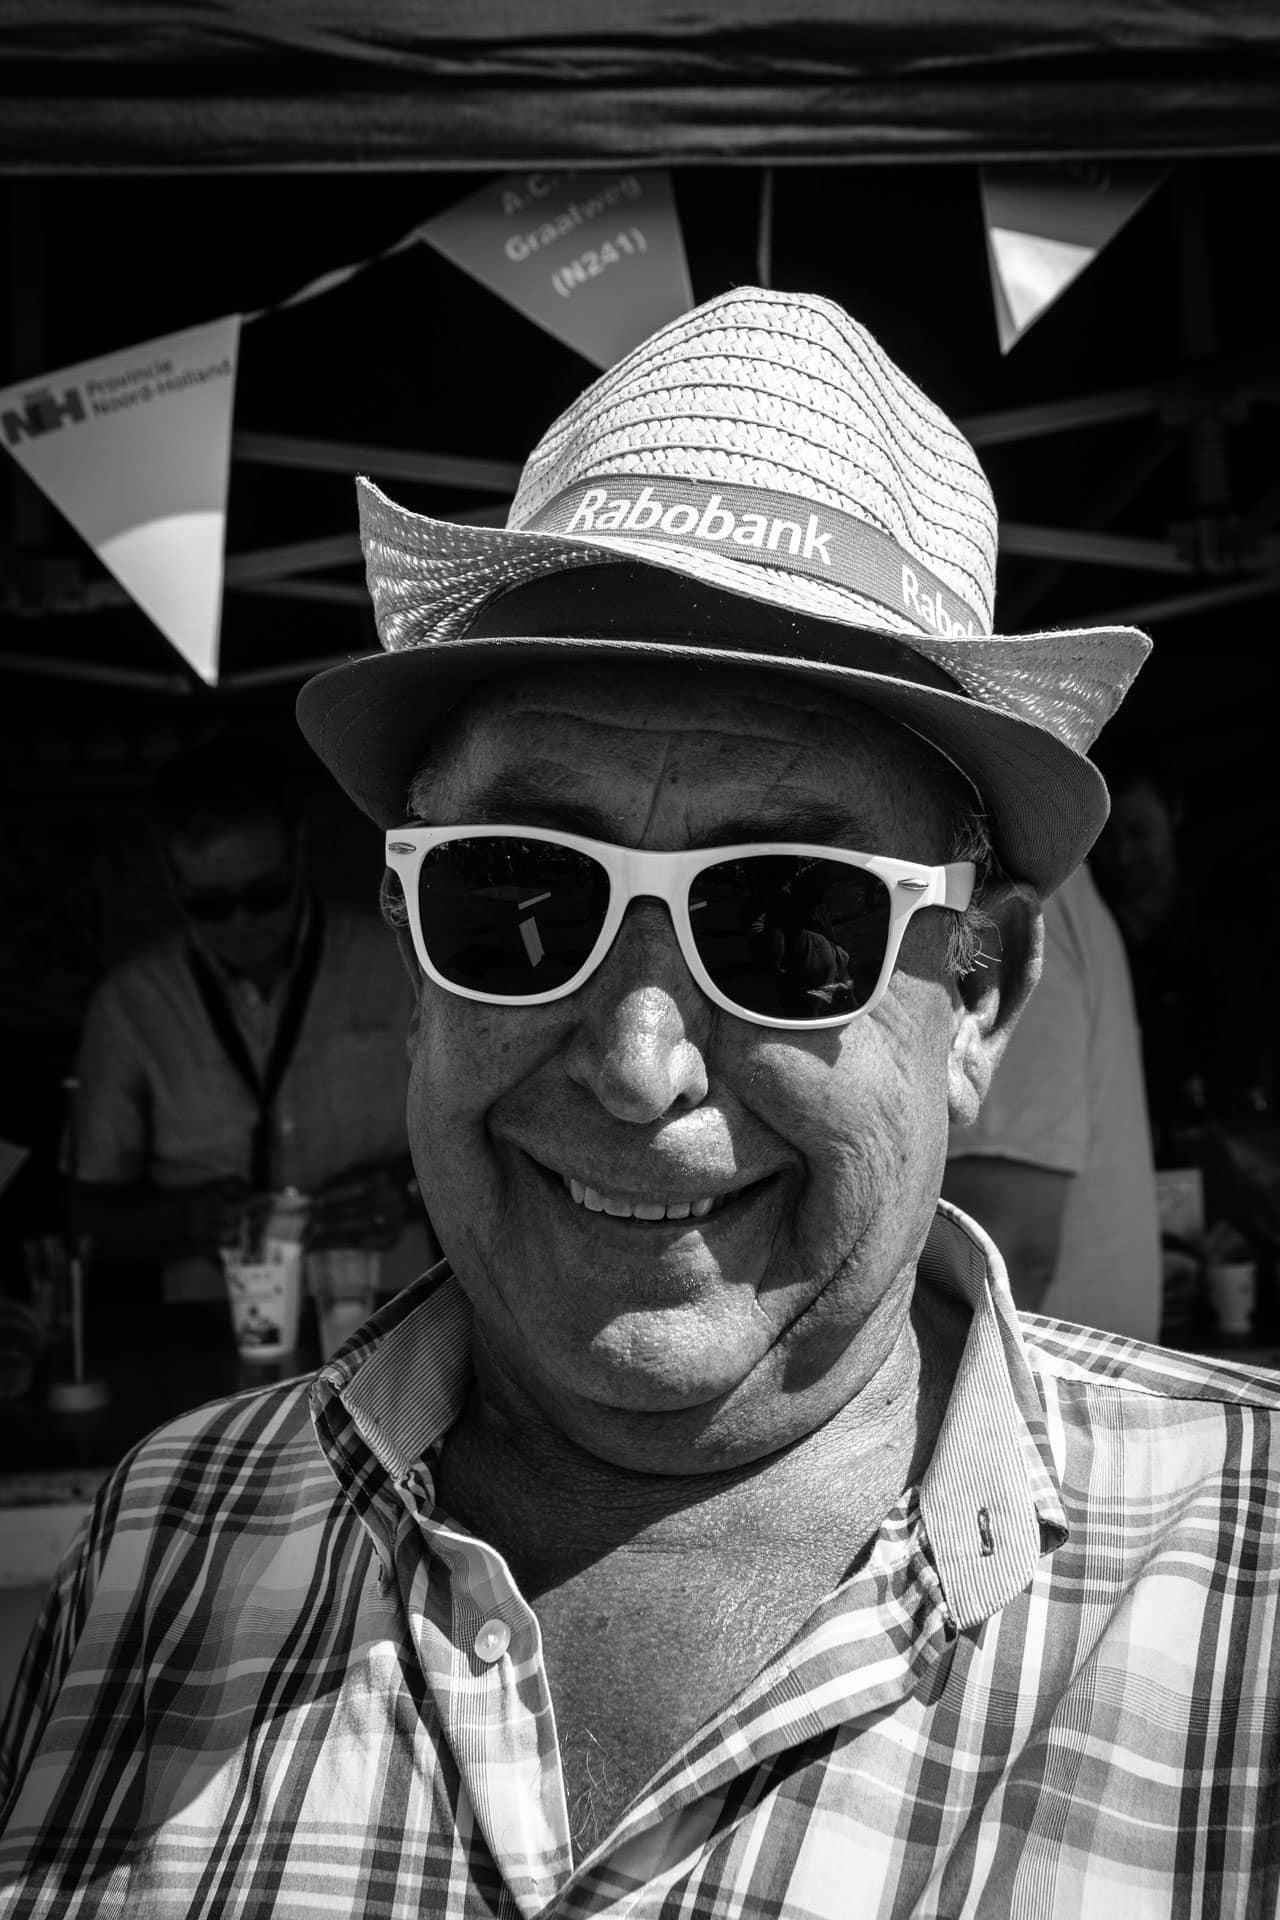 Walking around on the annual country fair (de landbouwtentoonstelling) in Opmeer this man received a hat from the Rabobank, A main local bank. and wore white sunglasses. 6-8-2018, Man with the white glasses #4, Opmeer, The Netherlands. As we street photographers roam the streets, observing and recording the fleeting moments that we encounter. Those Daily Observations go into photo books or as fine-prints on the wall as Street Photography grows as a profession and a medium.